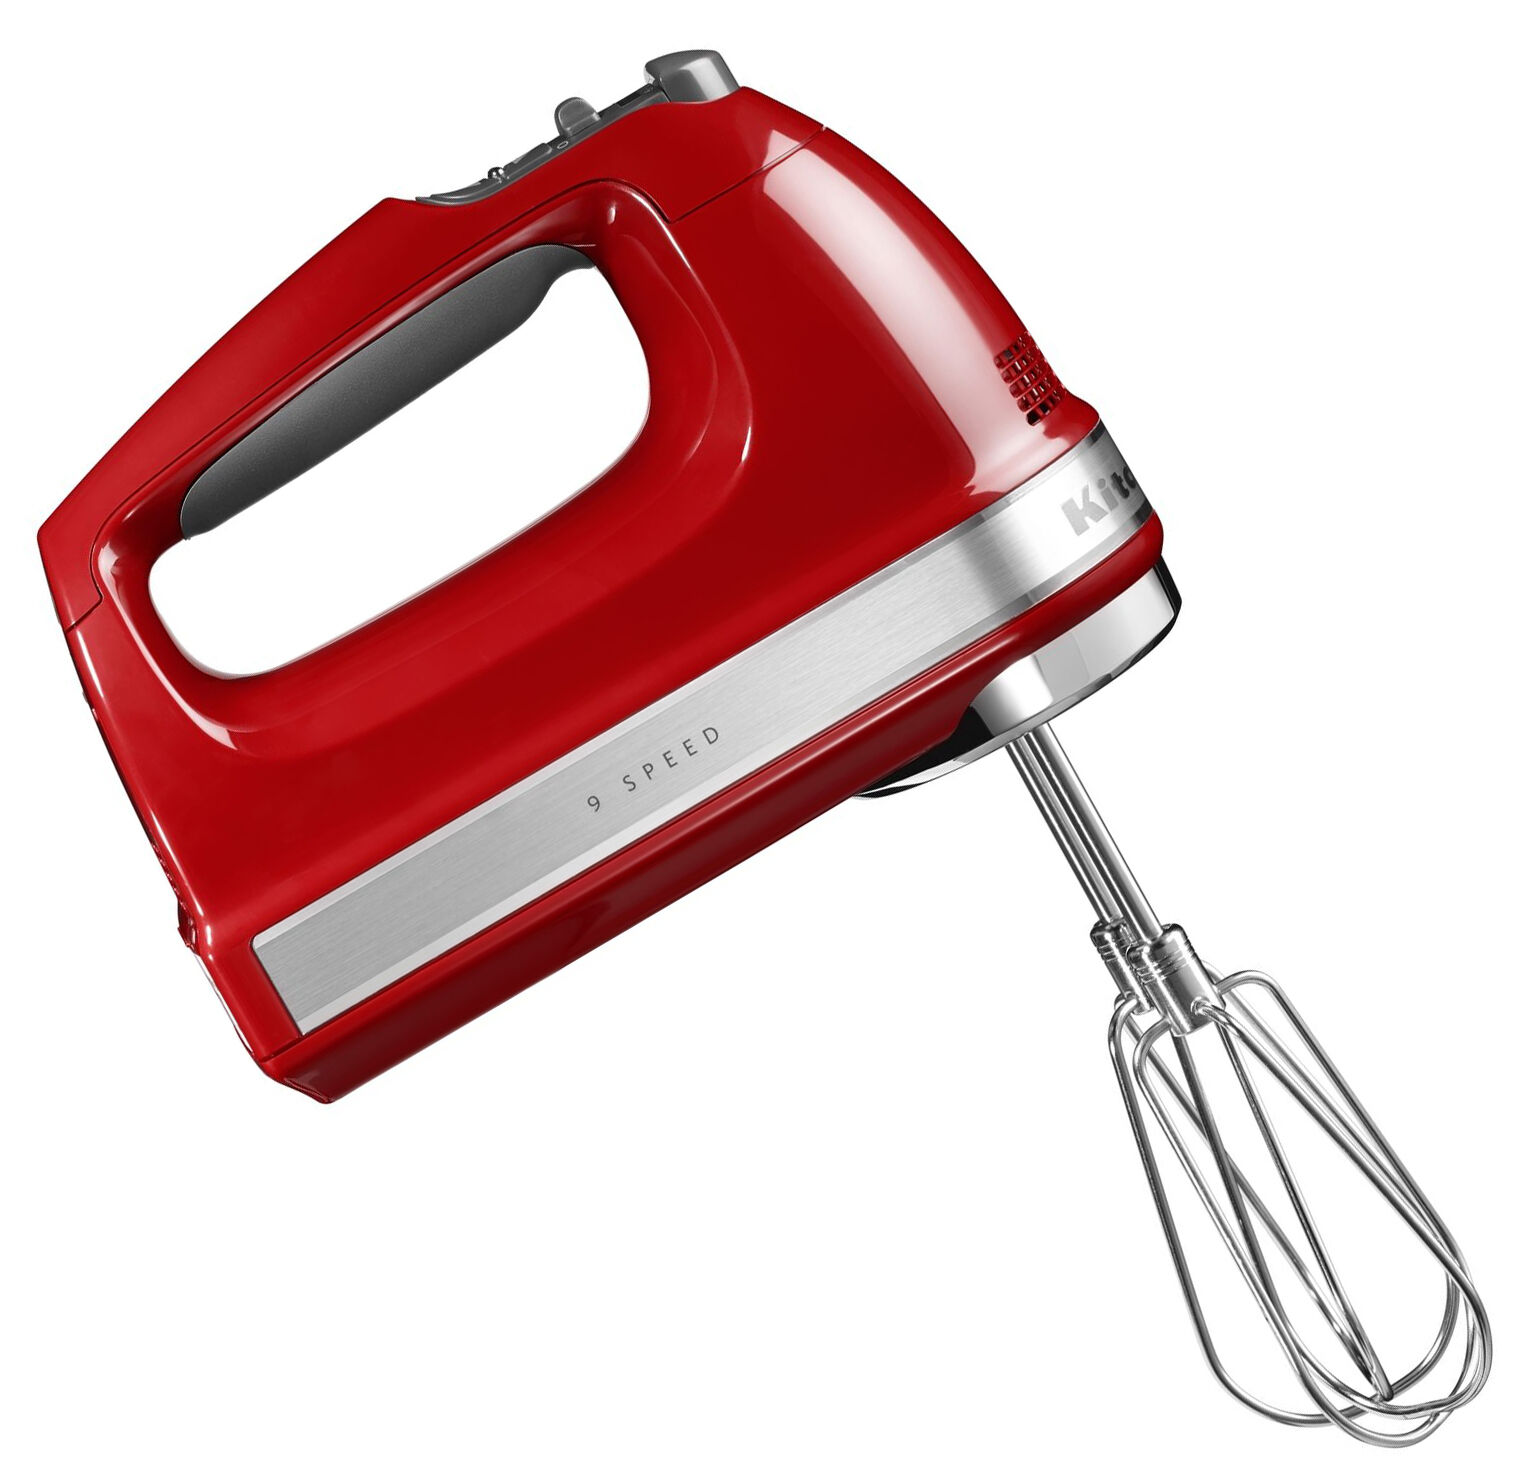 Black Decker Blender Top 10 Hand Mixers | eBay